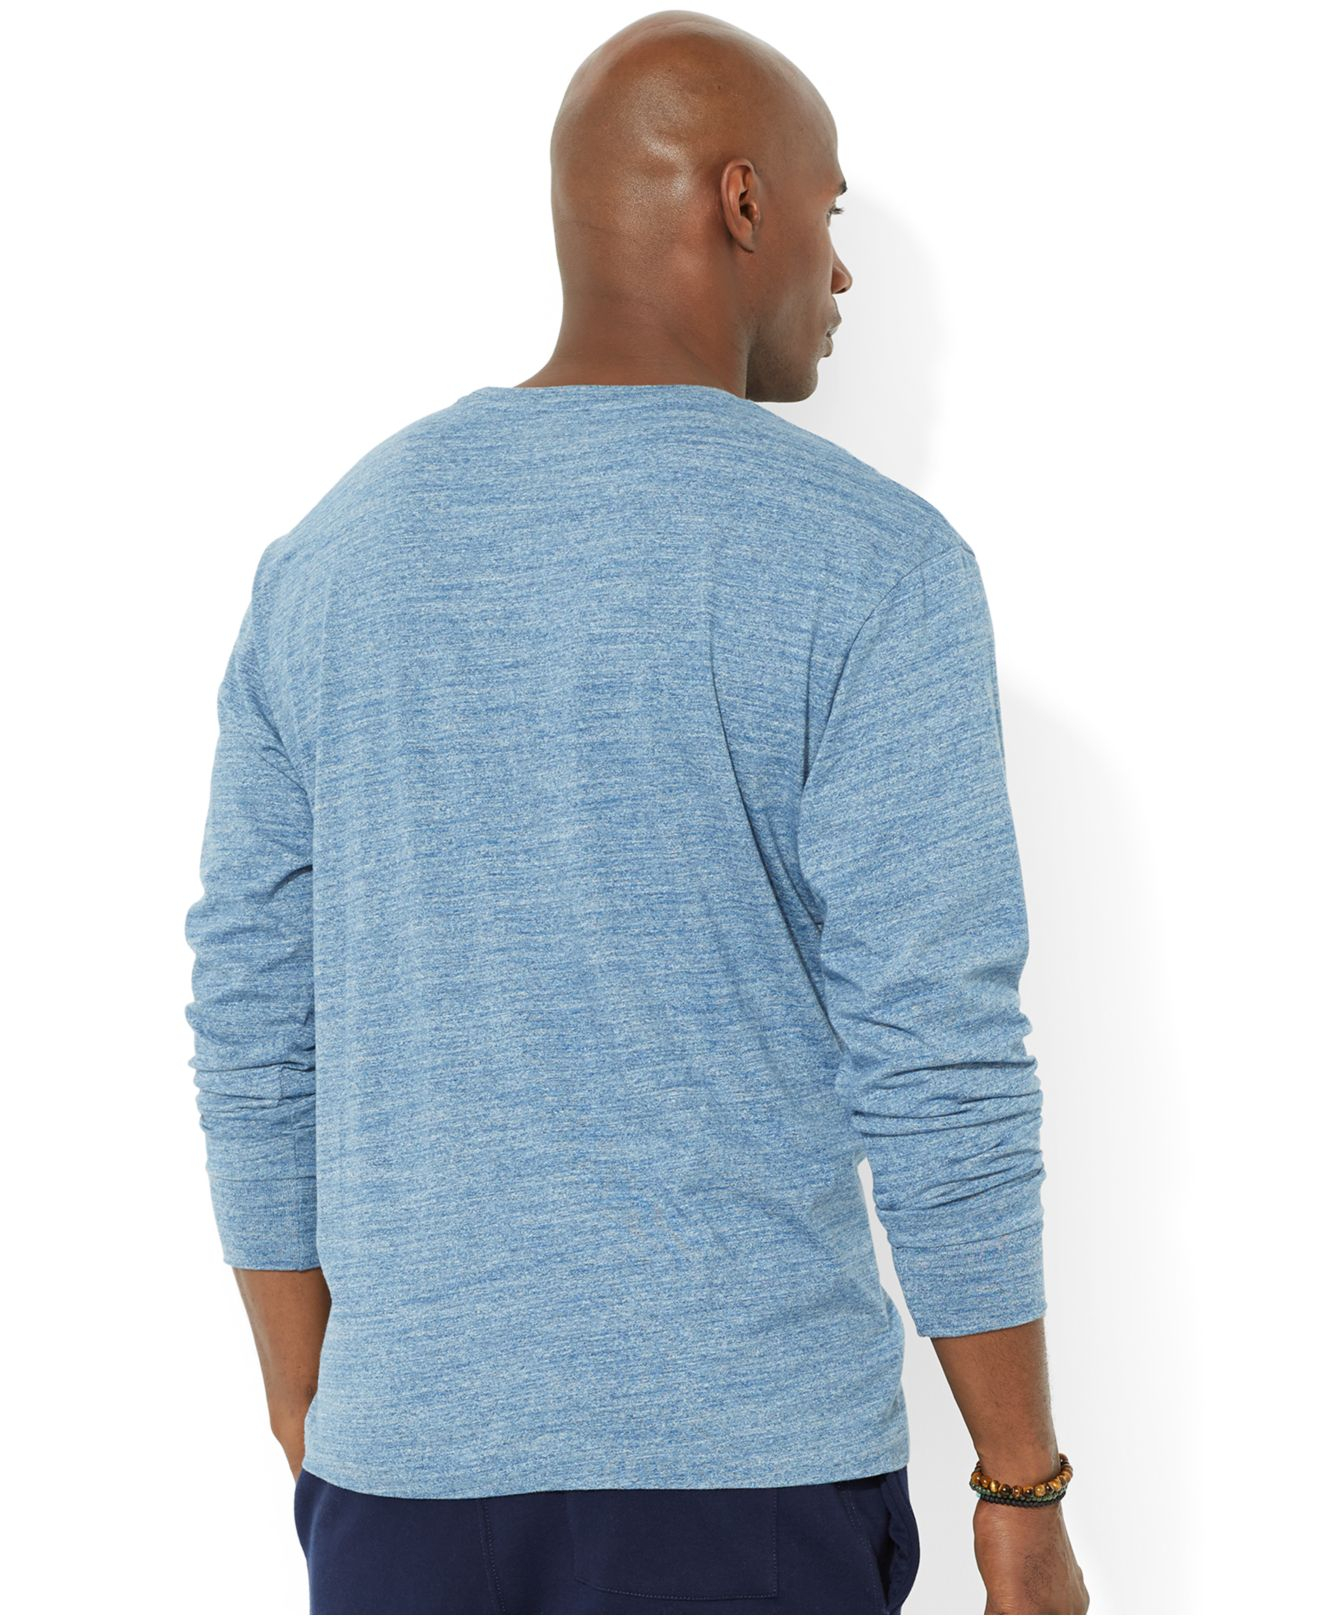 Lyst polo ralph lauren big and tall crew neck pocket t for Big and tall polo t shirts